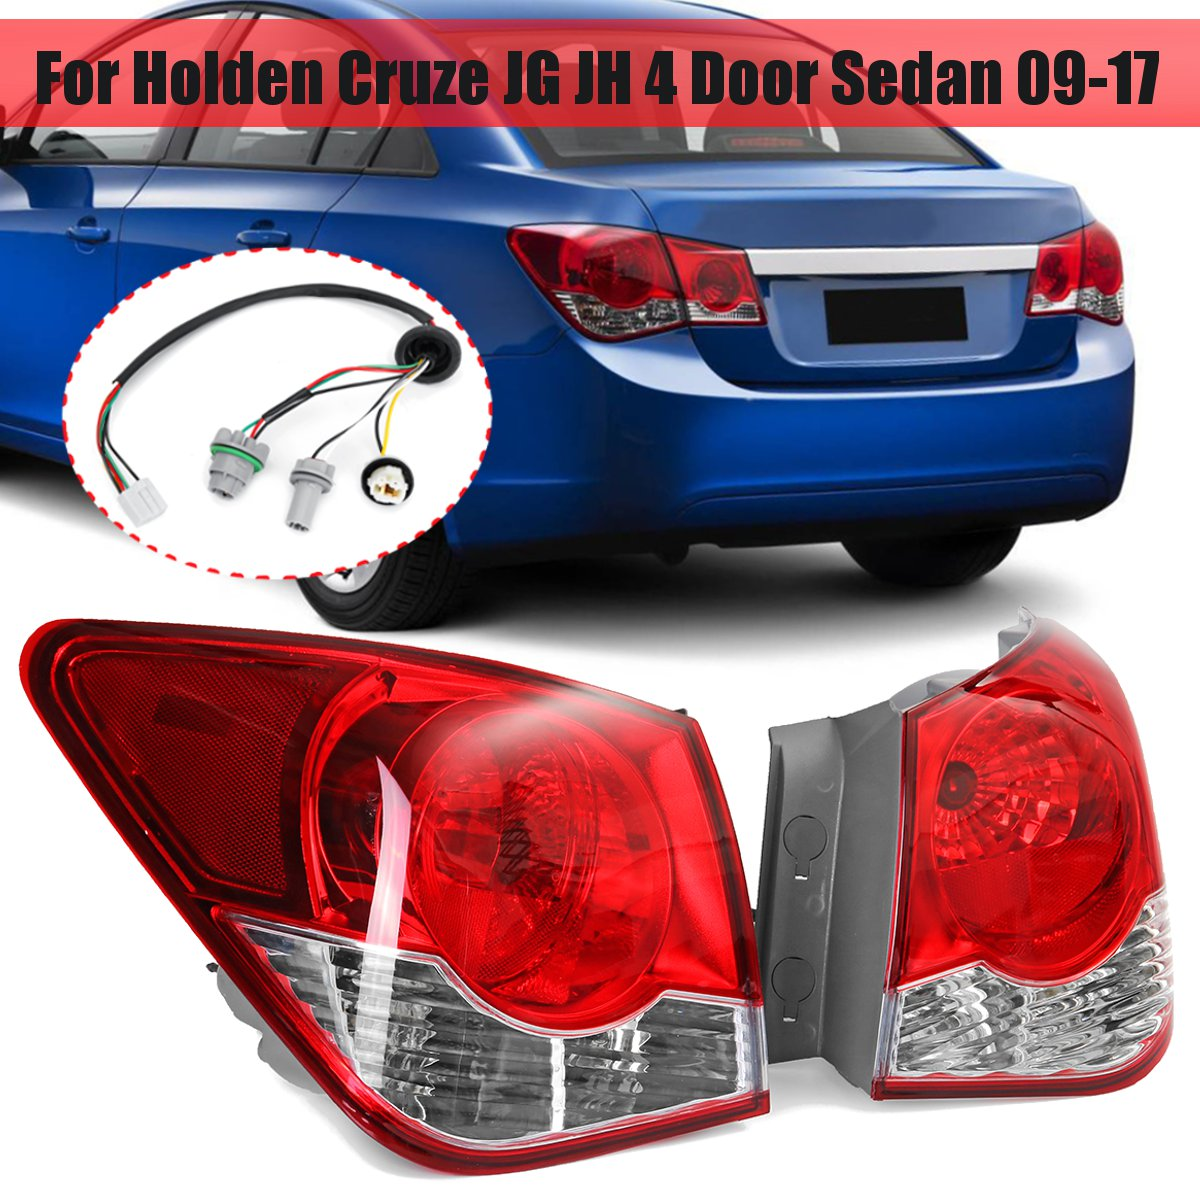 medium resolution of 2 rear tail light with wire harness for holden cruze jg jh 4 door sedan 2009 2017 brake lamp for toyota tacoma